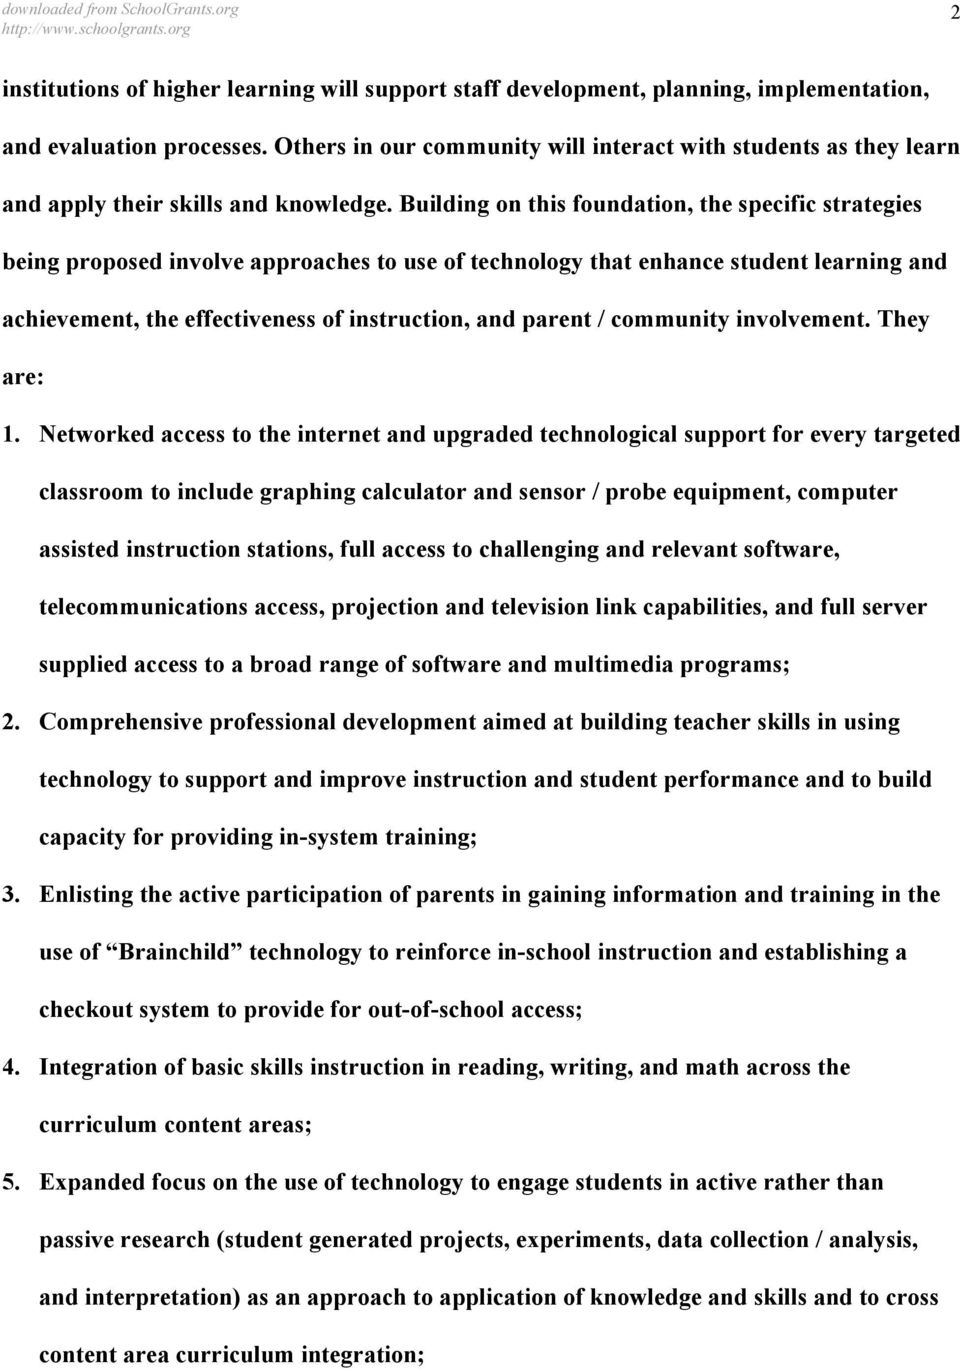 Building on this foundation, the specific strategies being proposed involve approaches to use of technology that enhance student learning and achievement, the effectiveness of instruction, and parent